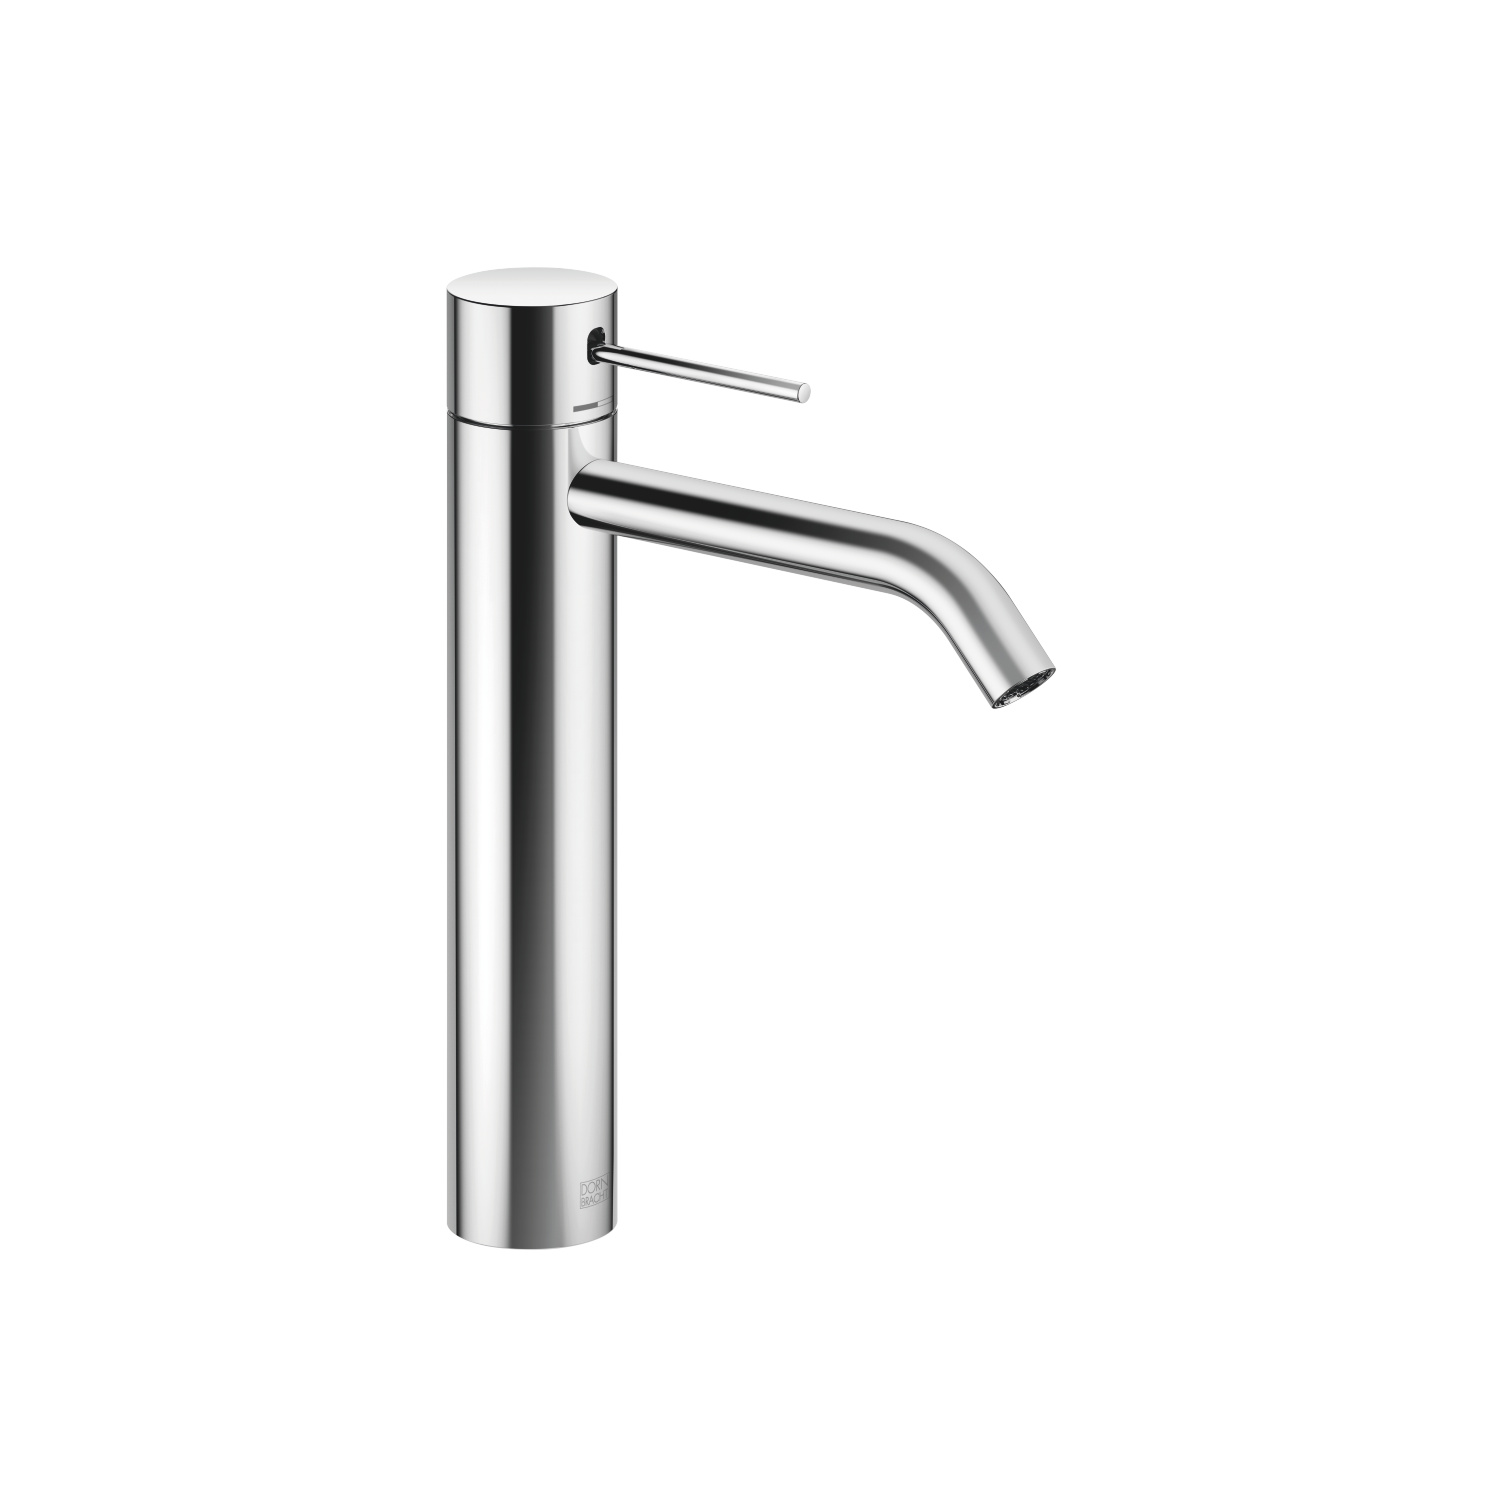 META SLIM Single-lever basin mixer with raised base without pop-up waste - polished chrome